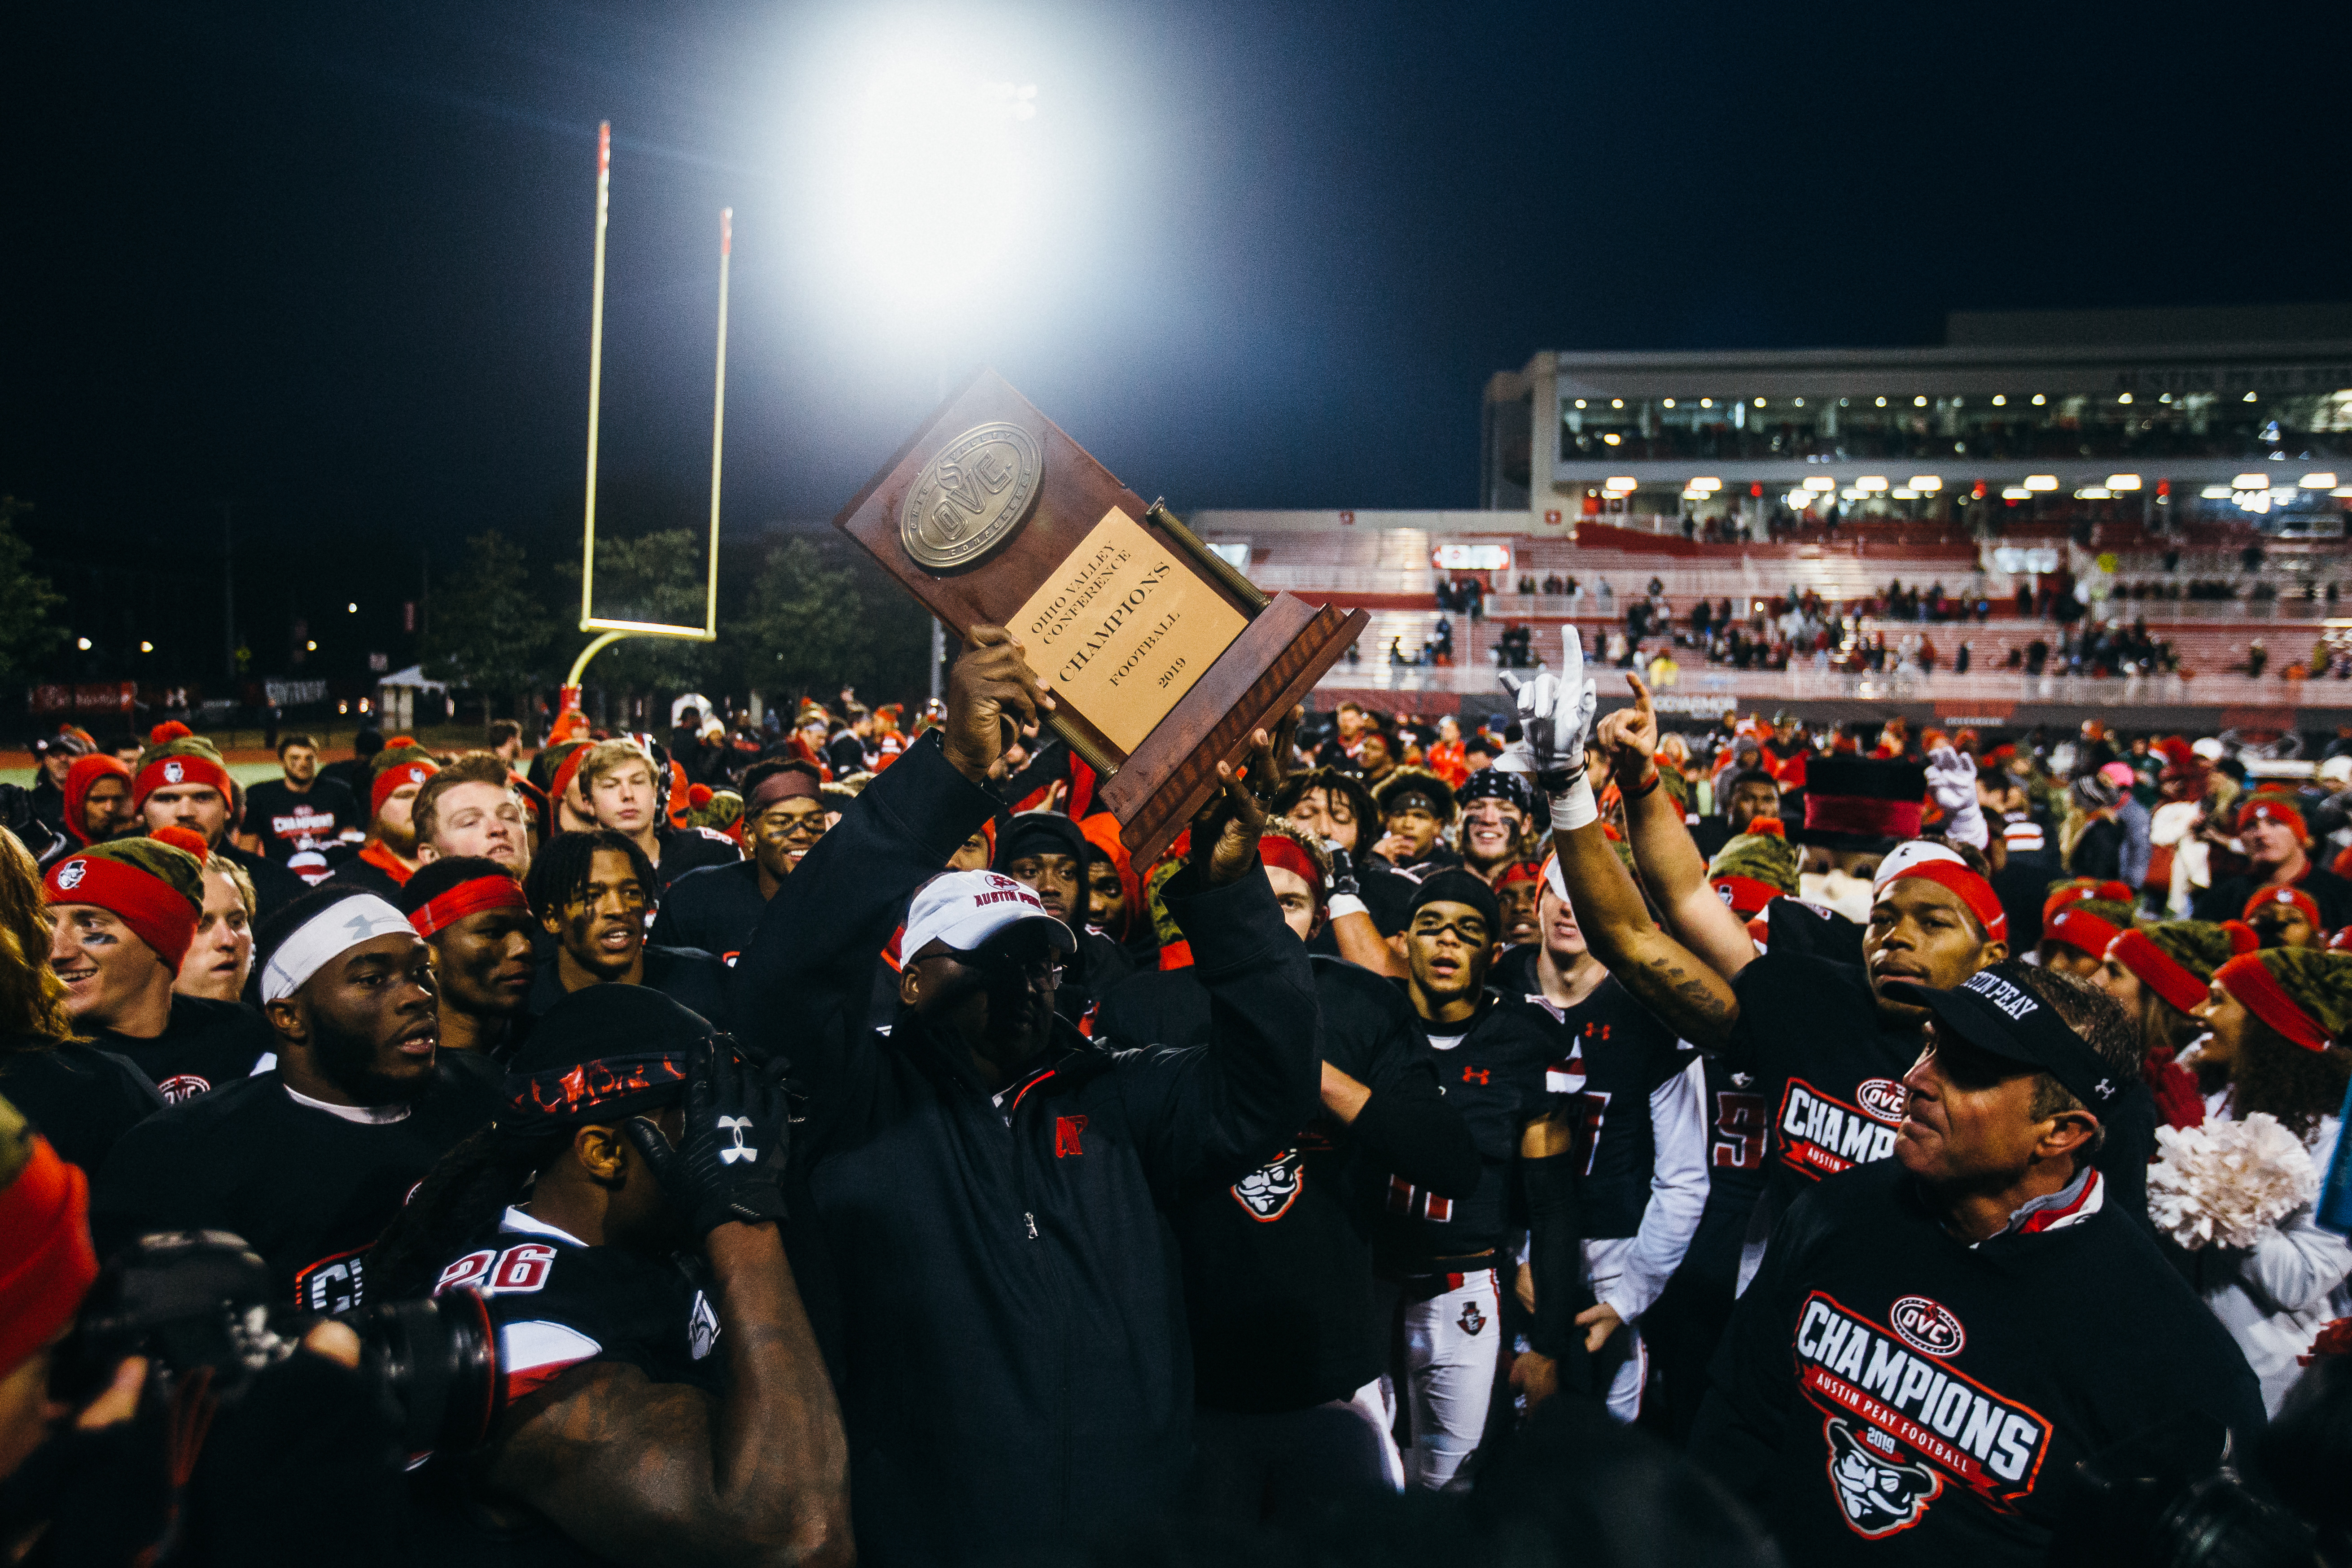 The APSU football team, alongside former head coach Mark Hudspeth, celebrate their 2019 OVC championship. | THE ALL STATE ARCHIVES